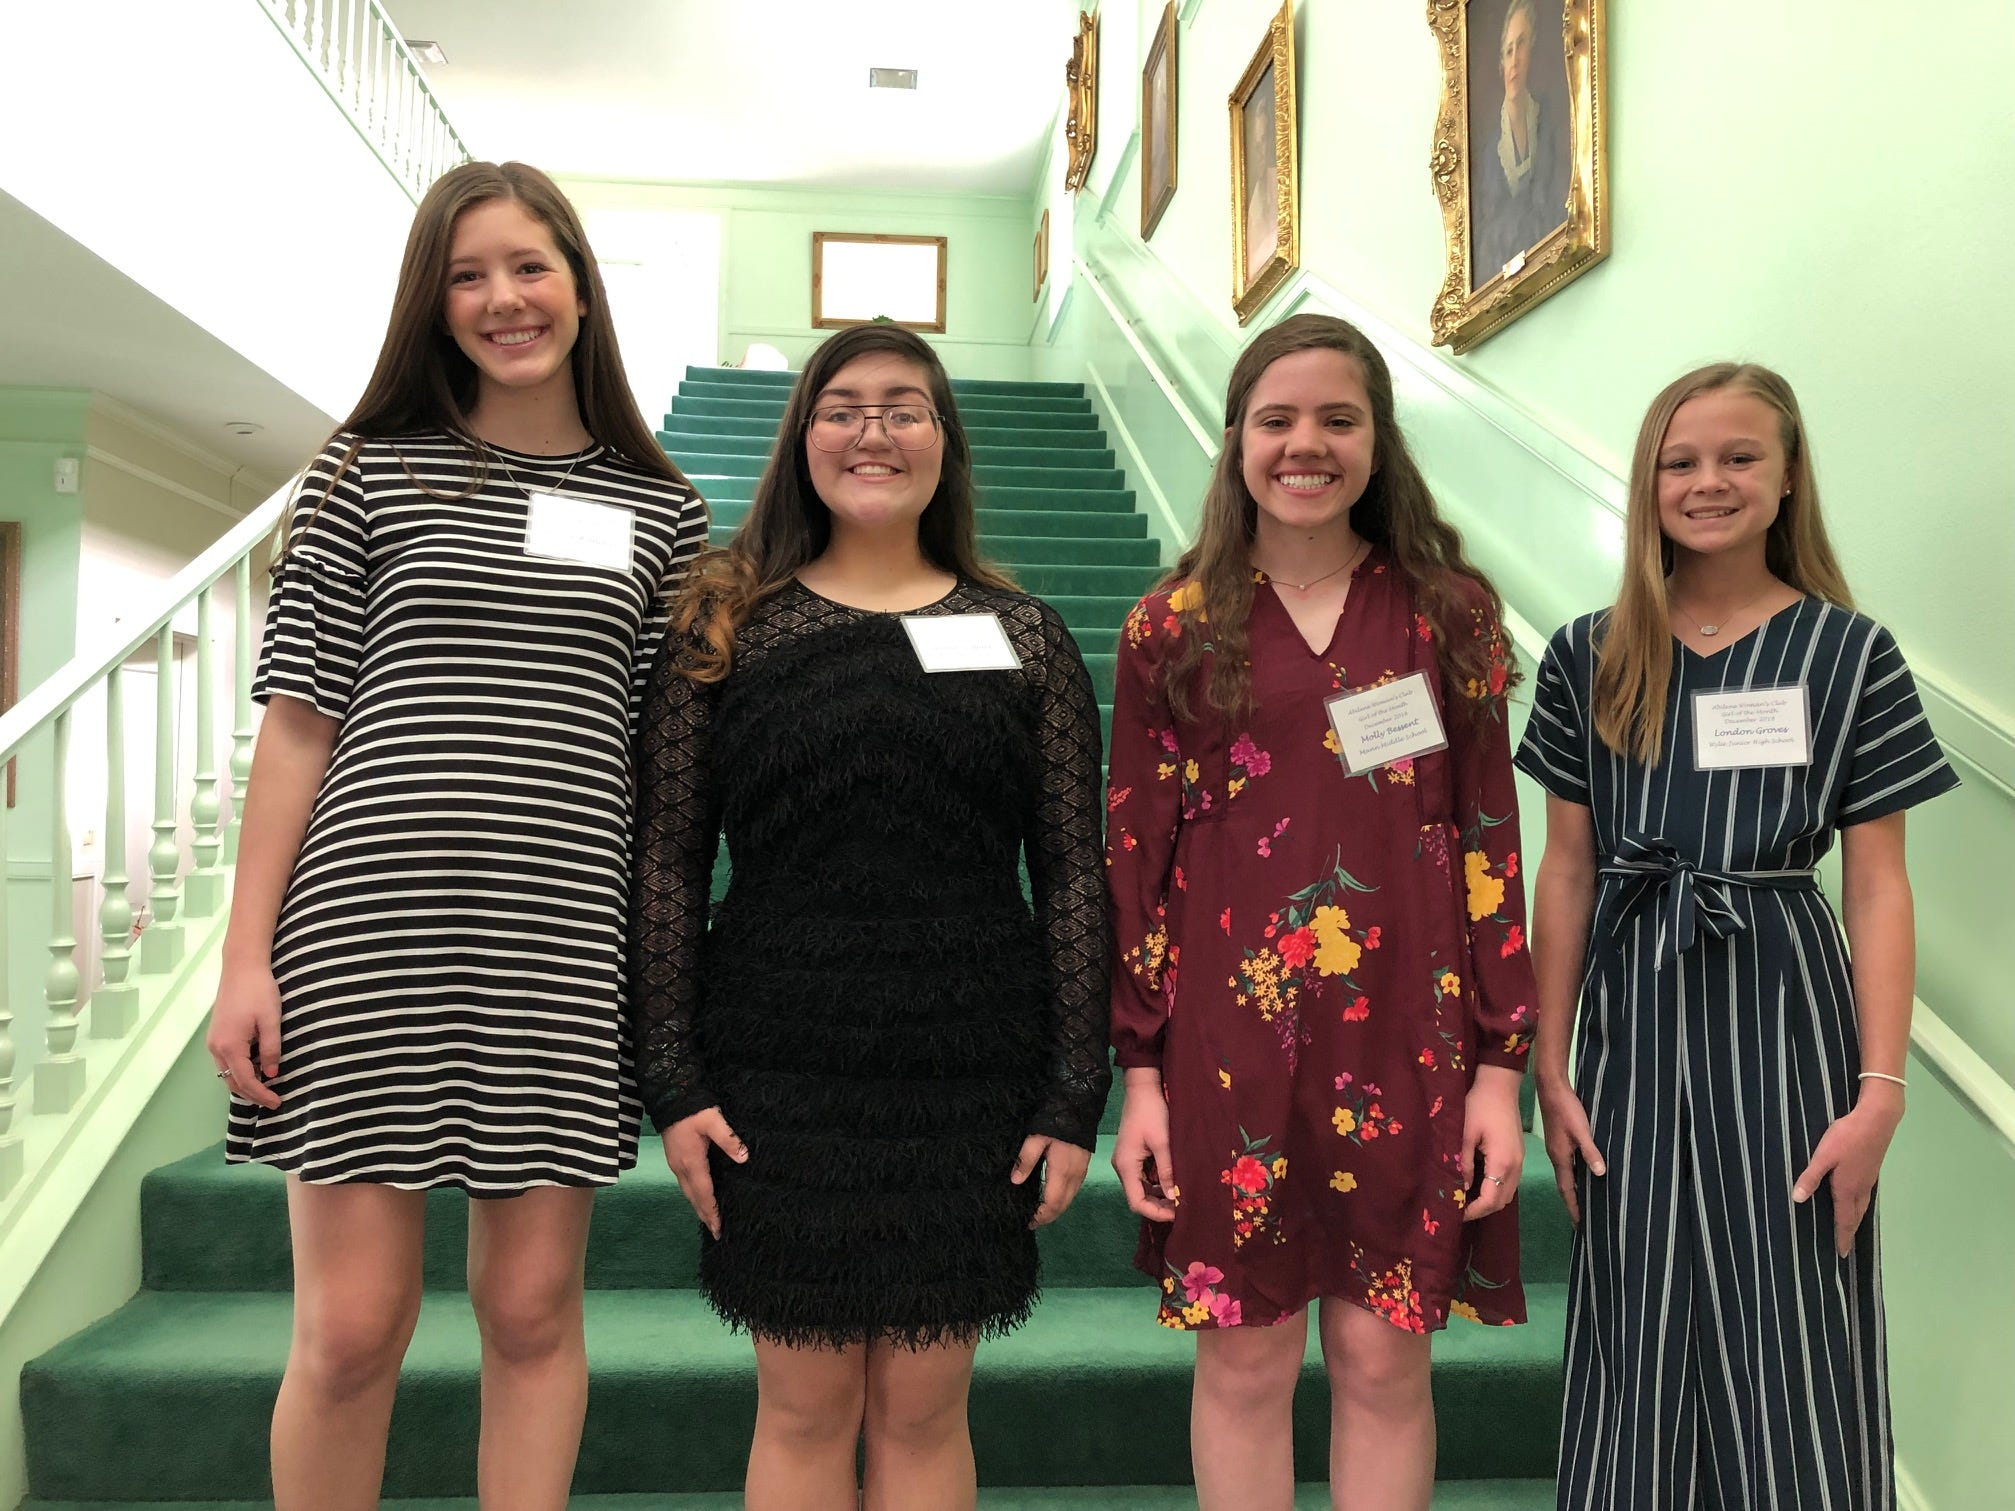 The December Girls of the Month at the Abilene Woman's Club. From left: Maeve Wallace, Craig Middle School; Anessa Tedford, Madison Middle School; Molly Bessent, Mann Middle School; and London Groves, Wylie Middle School. Not pictured: Jordan Hernandez, Clack Middle School.